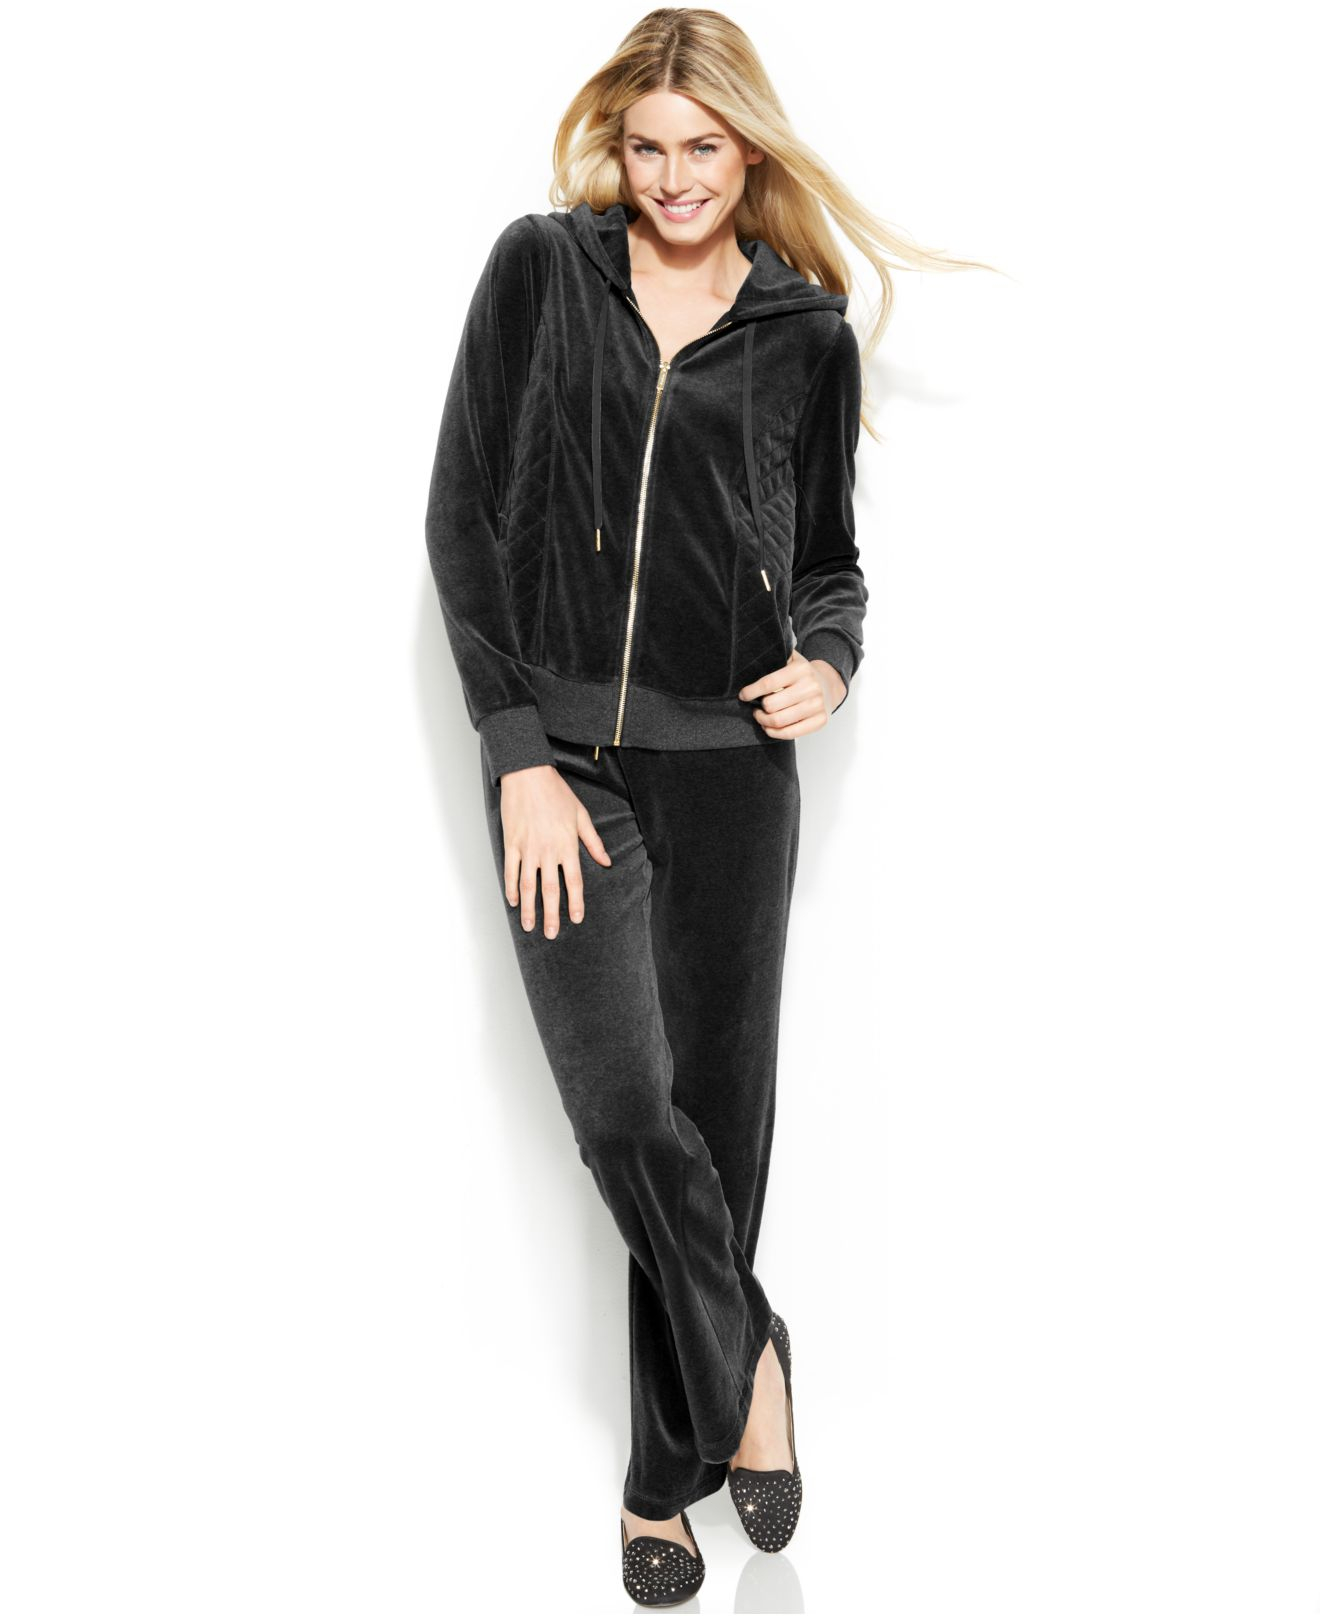 6c3b8a4a1f3 Lyst - Calvin Klein Zip-Front Velour Hooded Jacket in Black